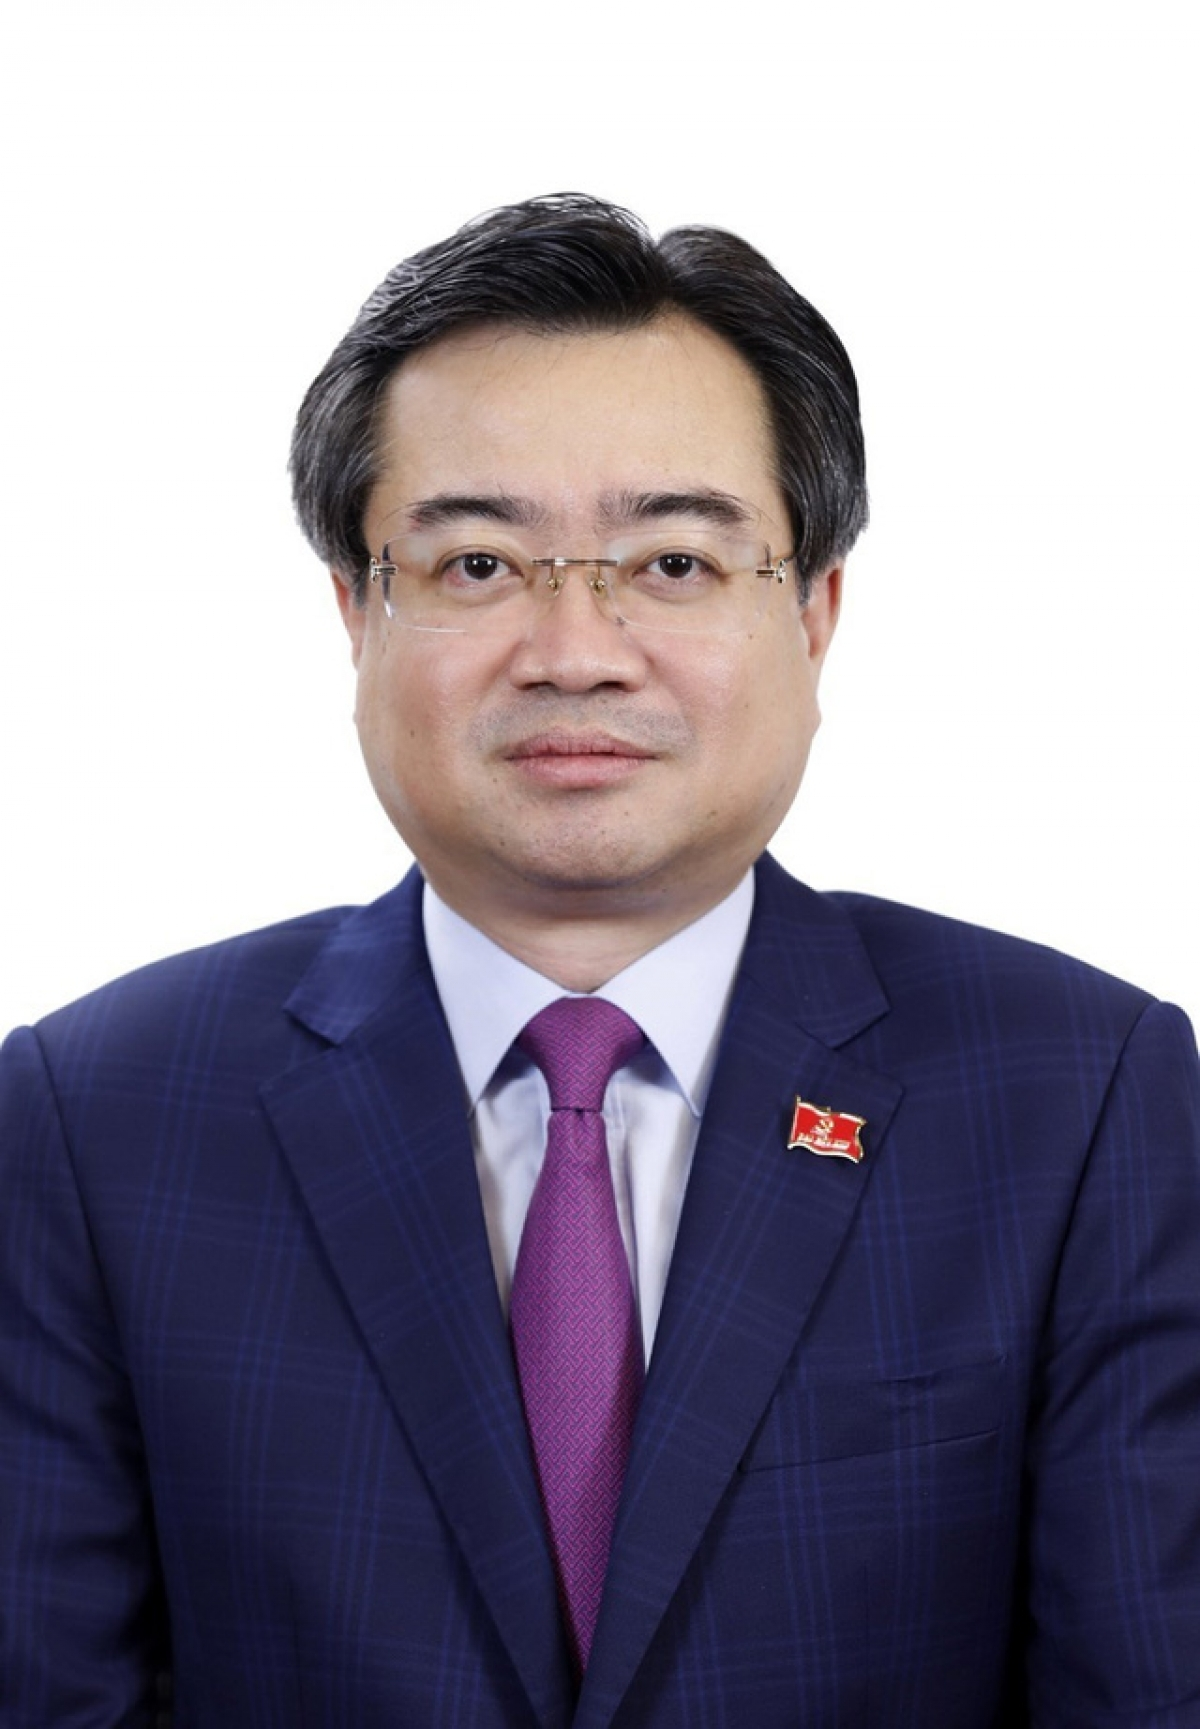 Vietnam Minister of Construction Nguyen Thanh Nghi: Biography and Career